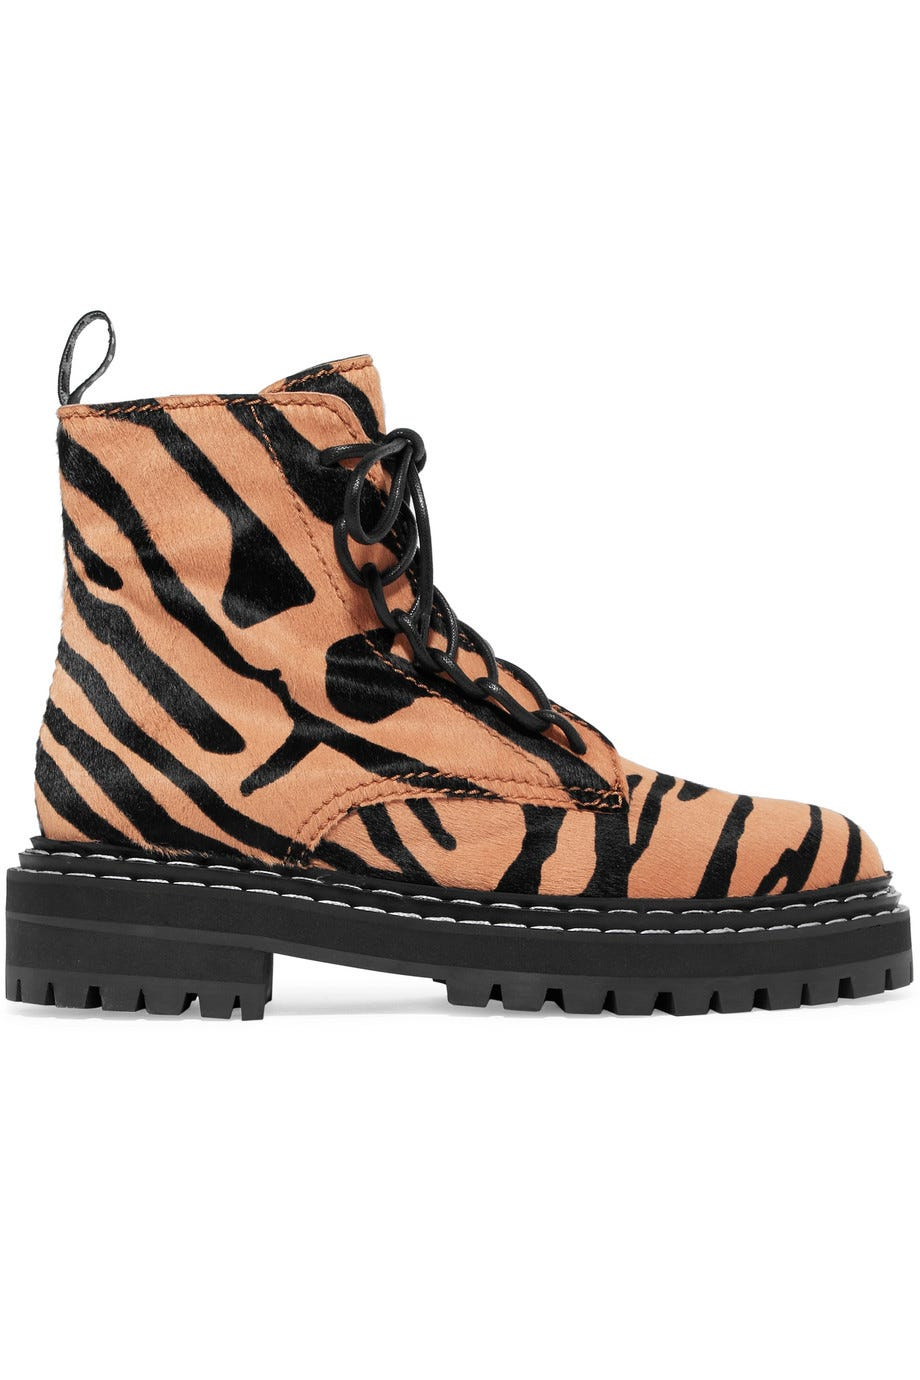 09120dc0db1 Cute Combat Boot Styles - Military Boots Trend